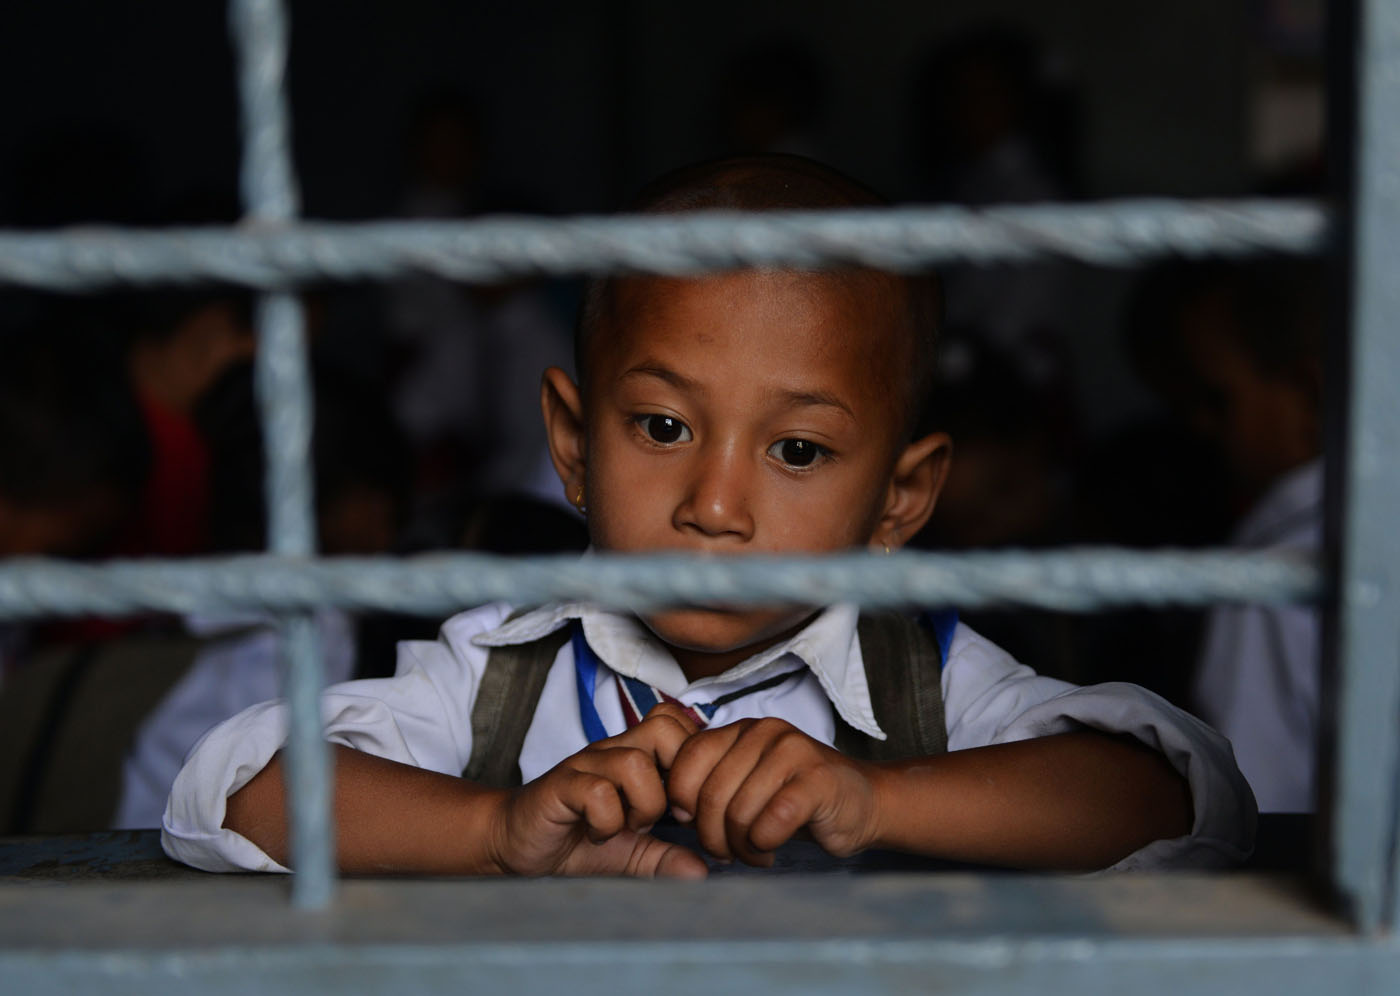 Nepalese children return to school